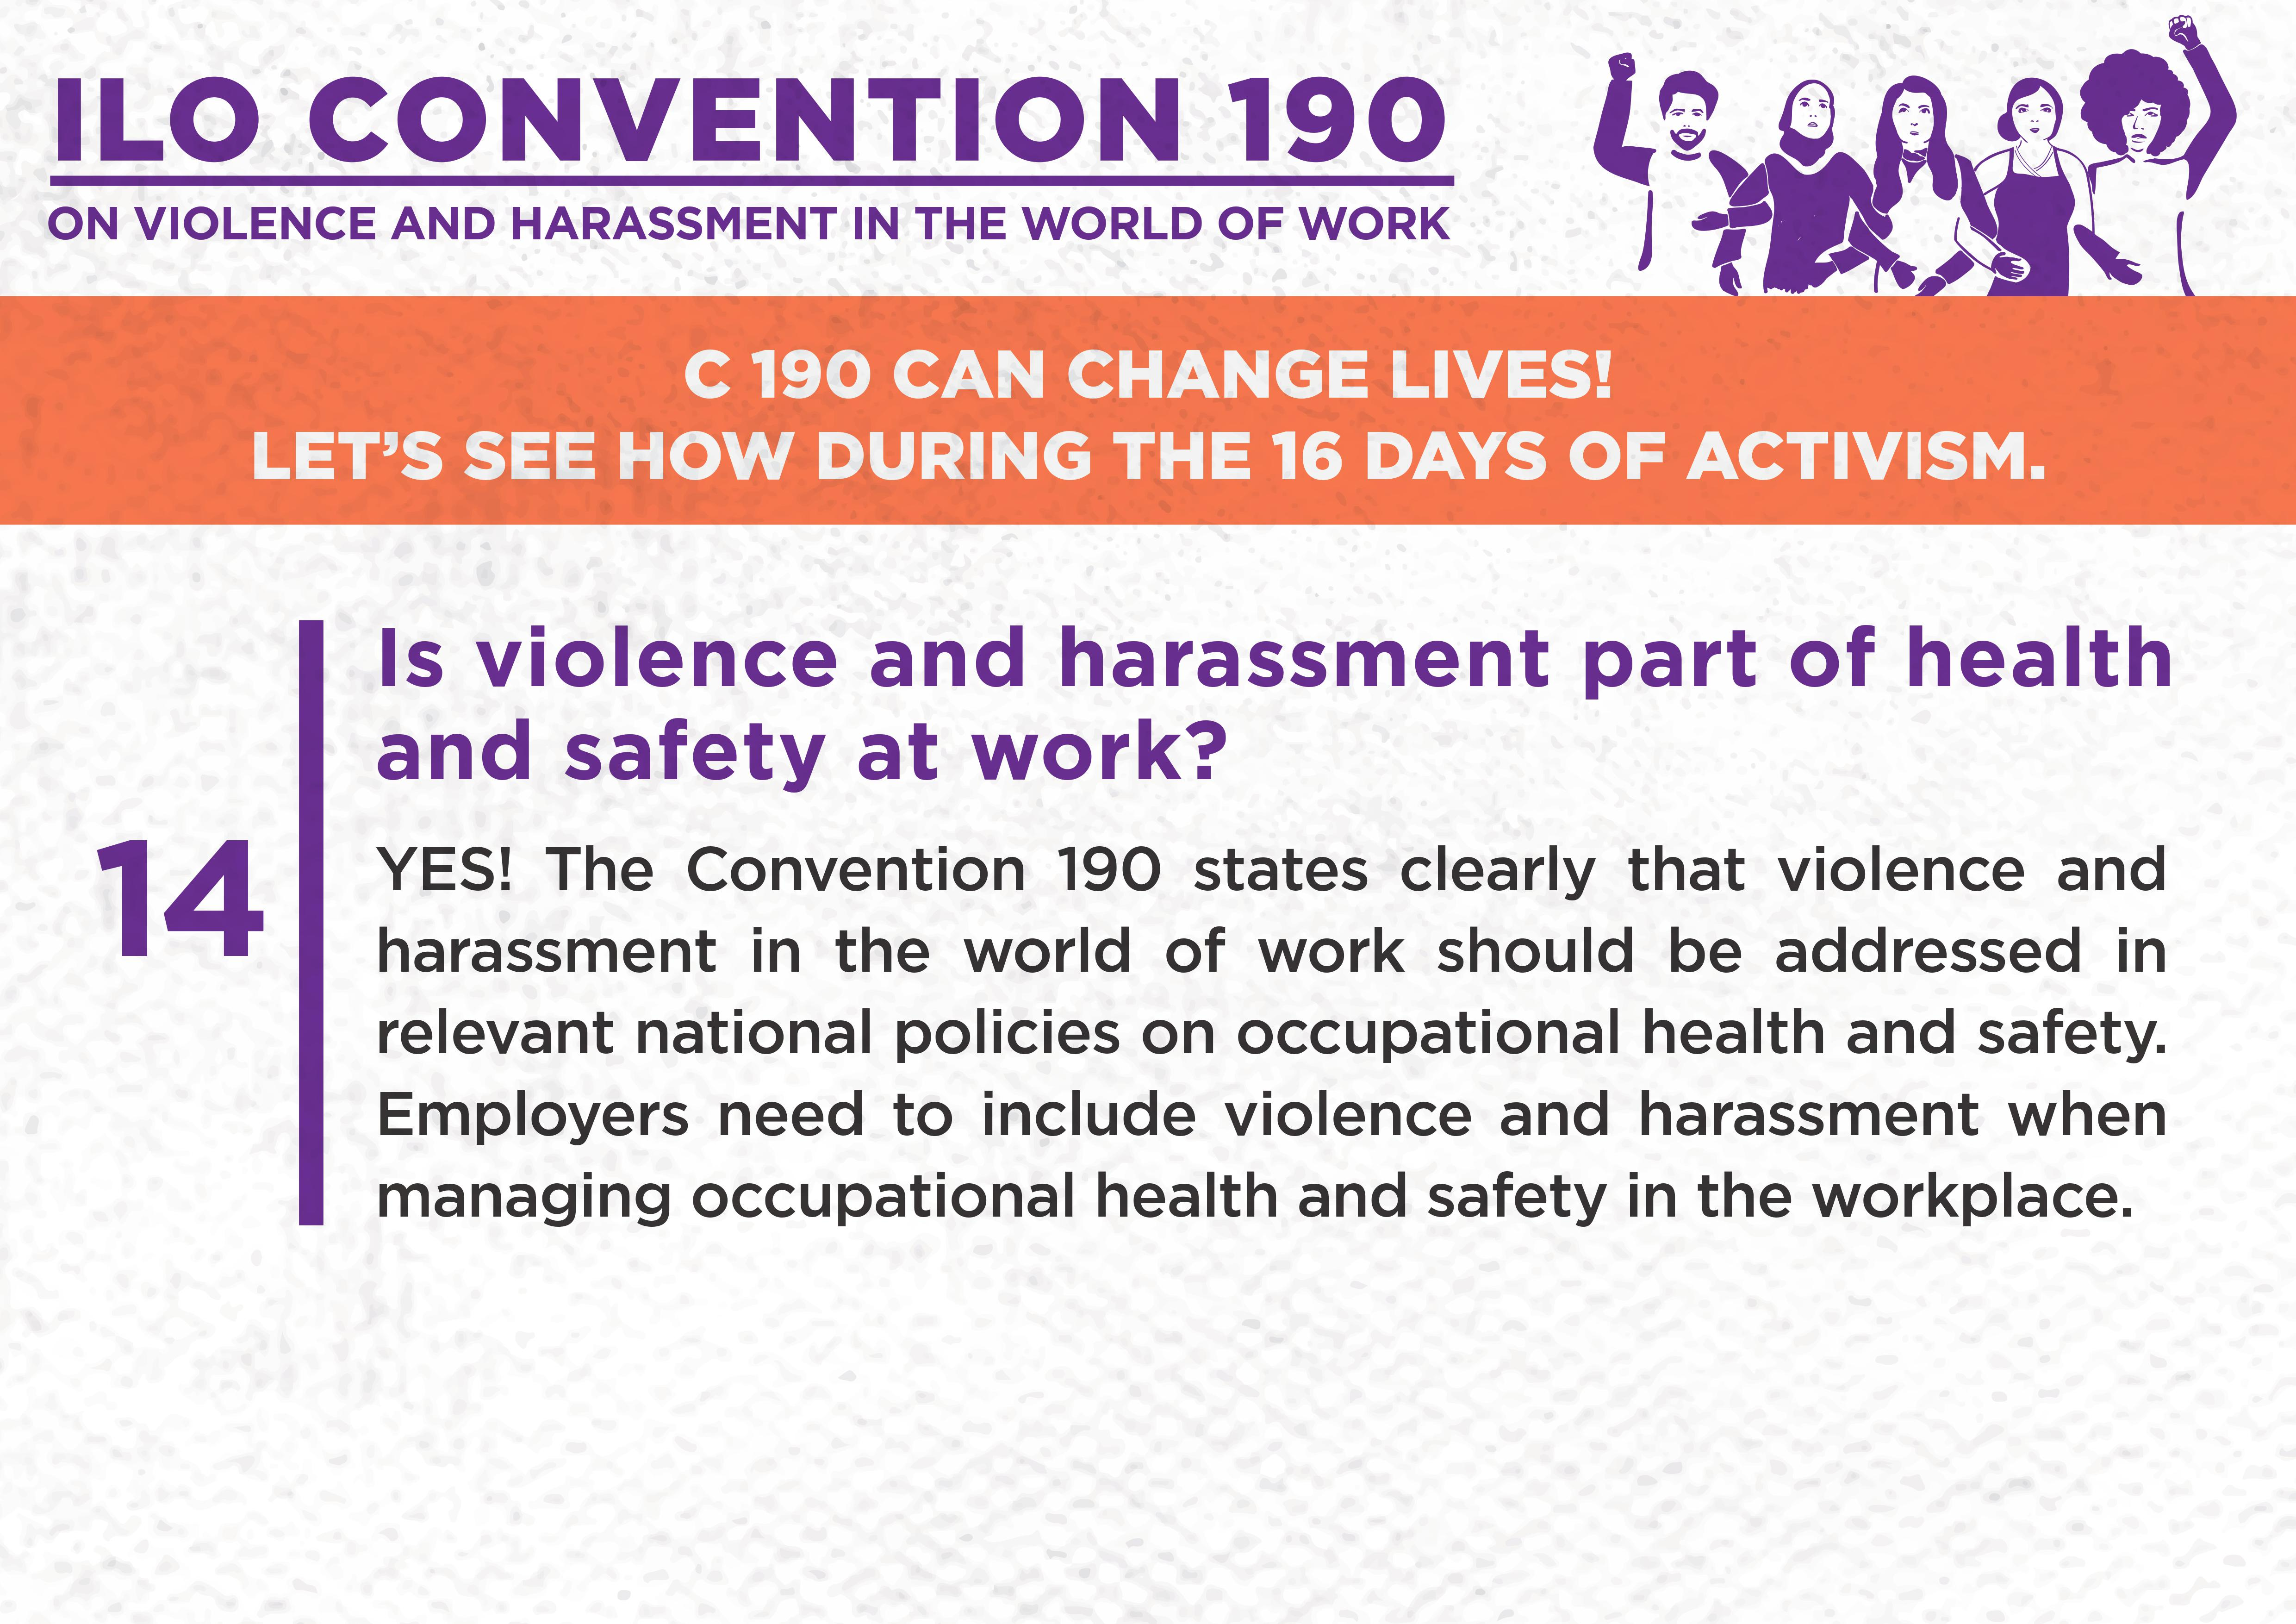 14. Is violence and harassment part of health and safety at work?